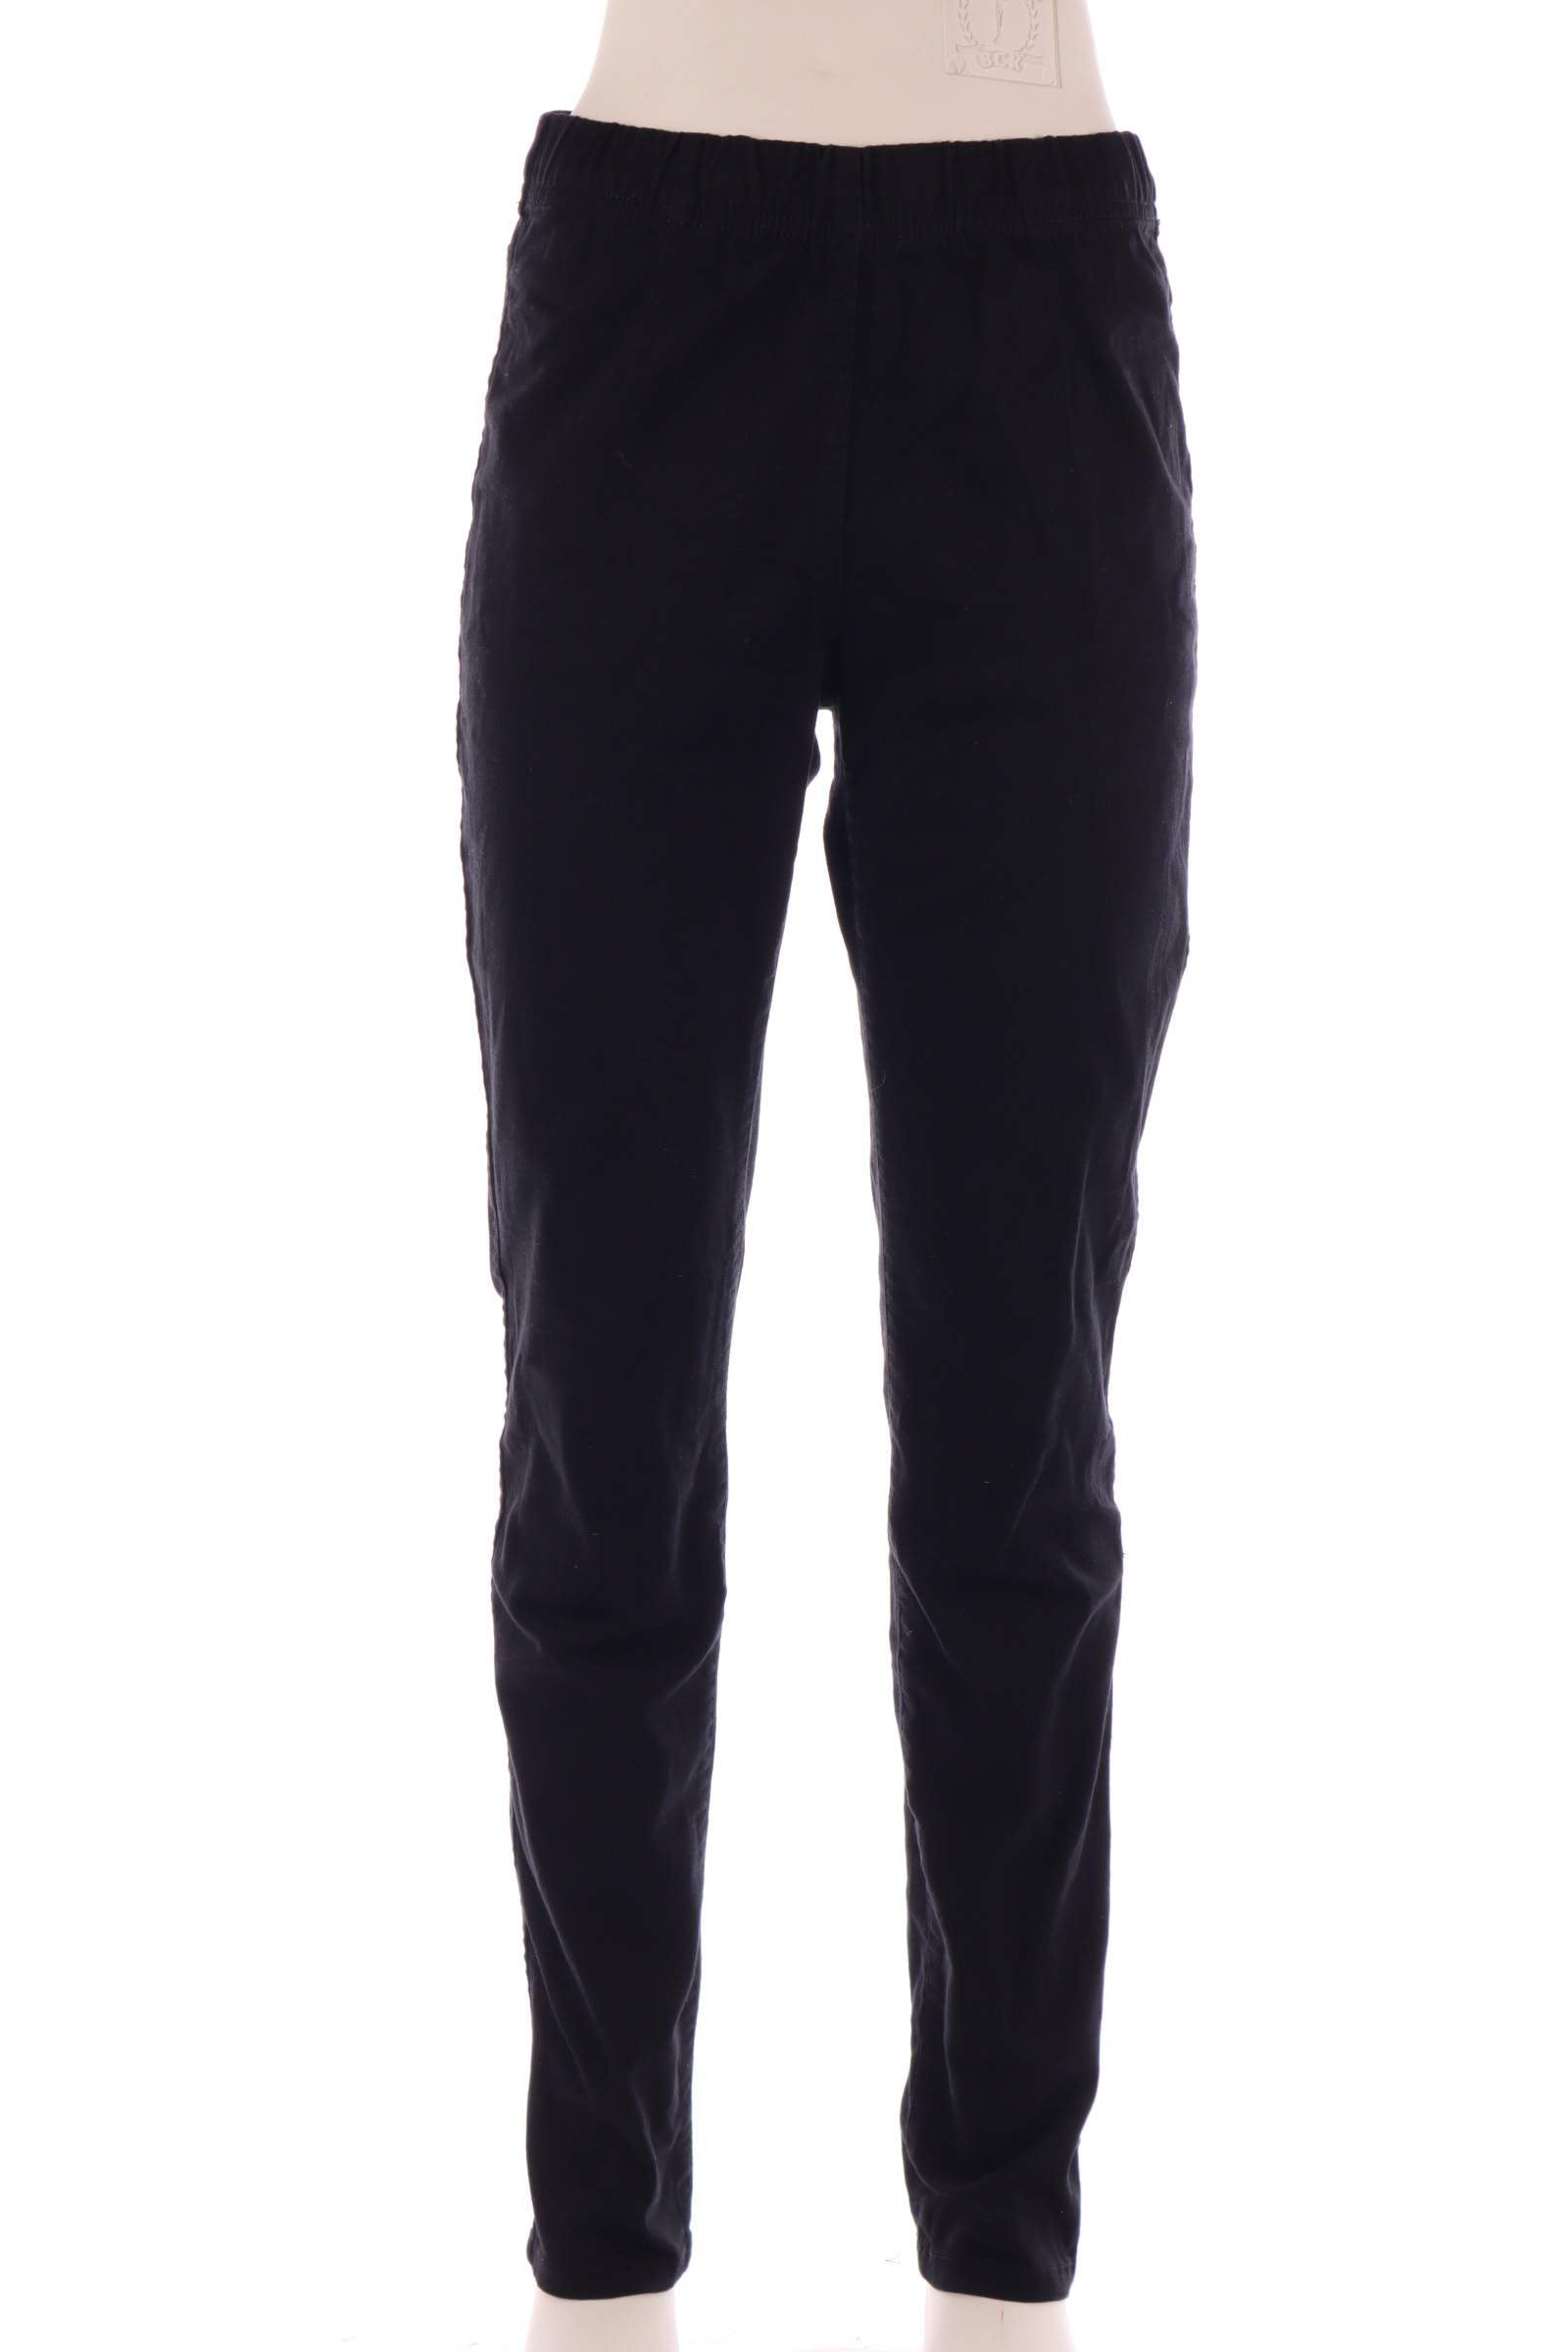 Cellbes Black Jeans - upty.store